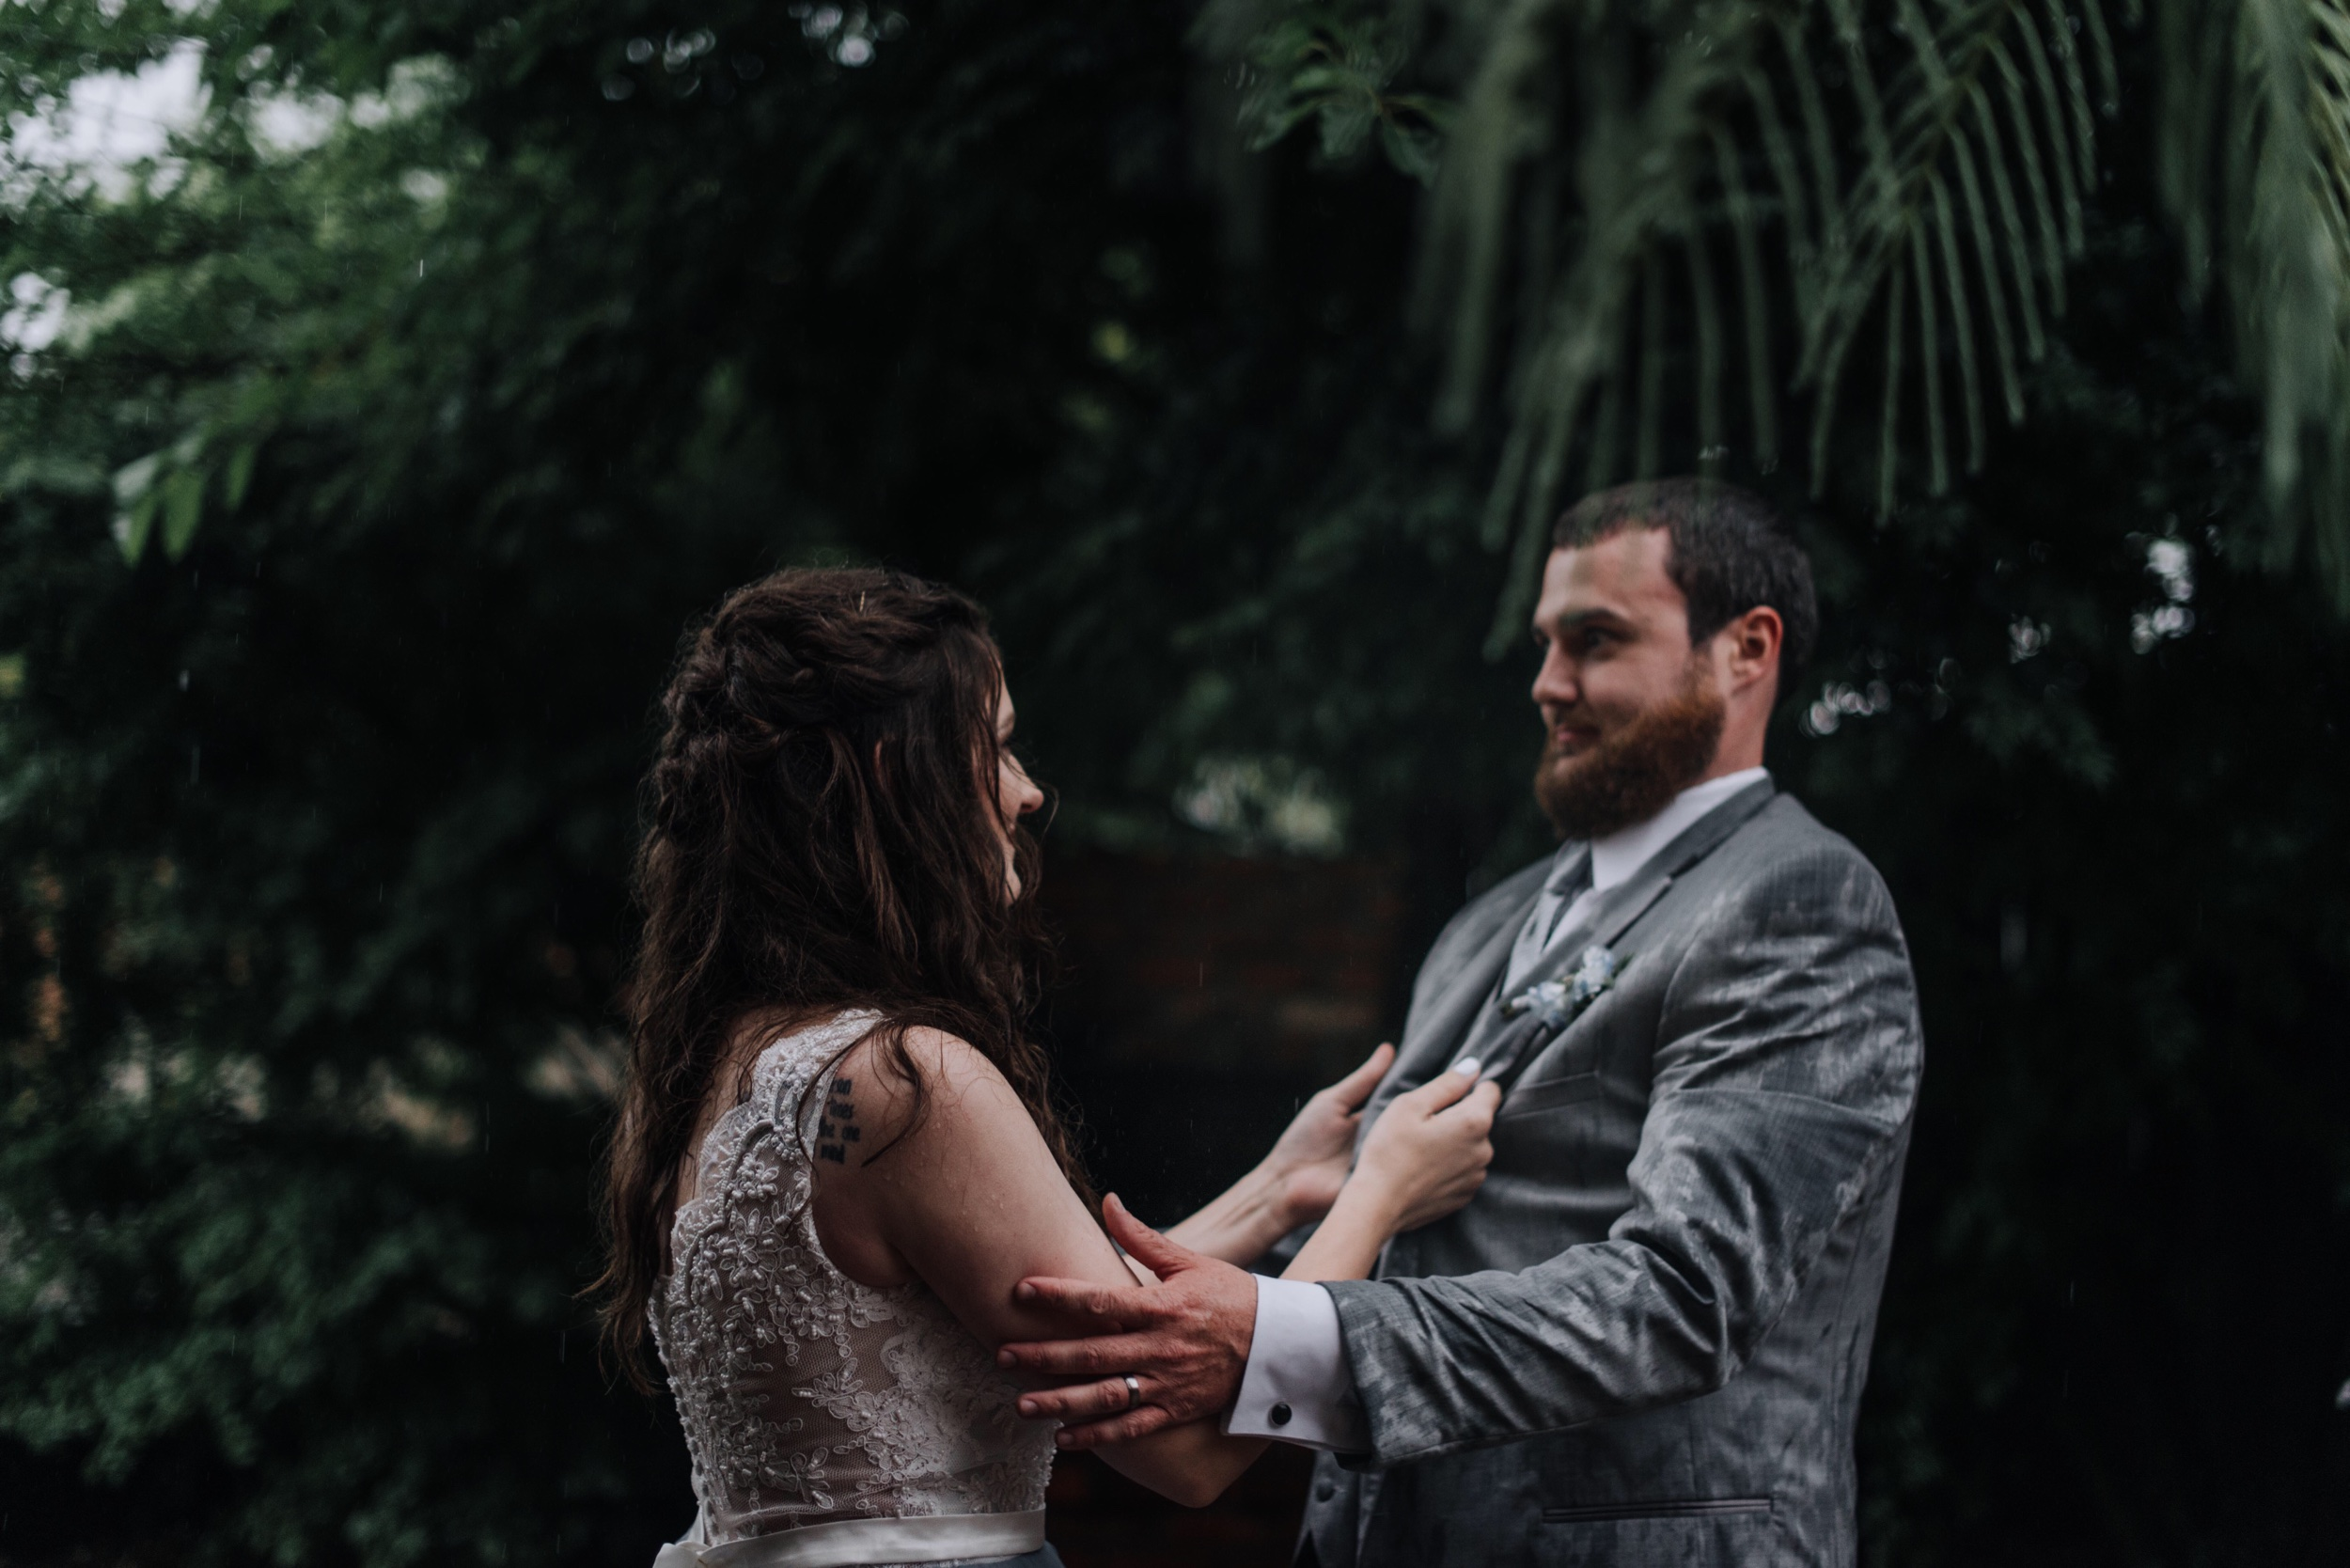 Greenville elopement photographer